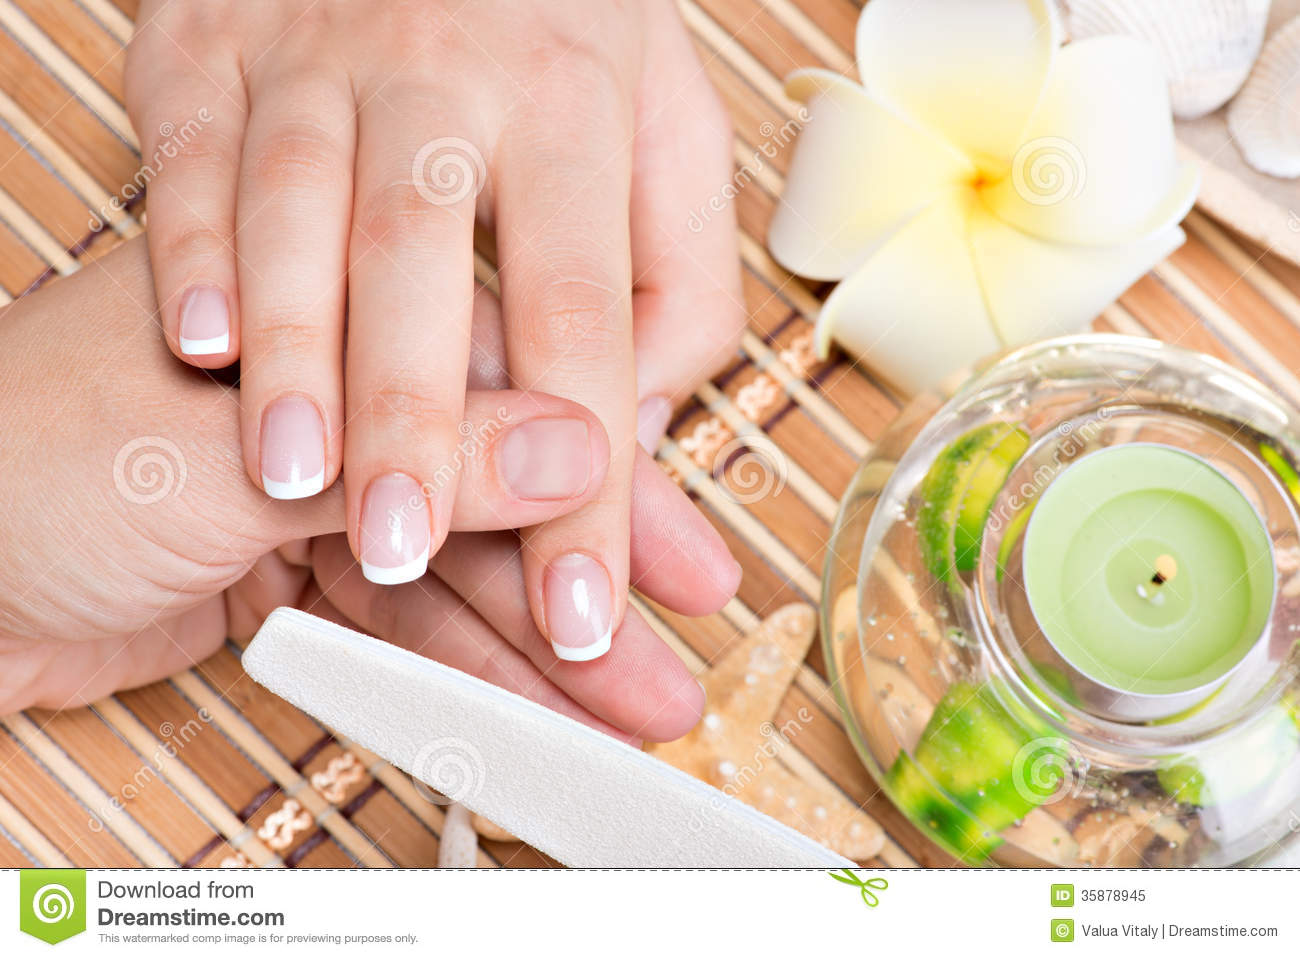 Woman In A Nail Salon Receiving Manicure Stock Image - Image of hand ...